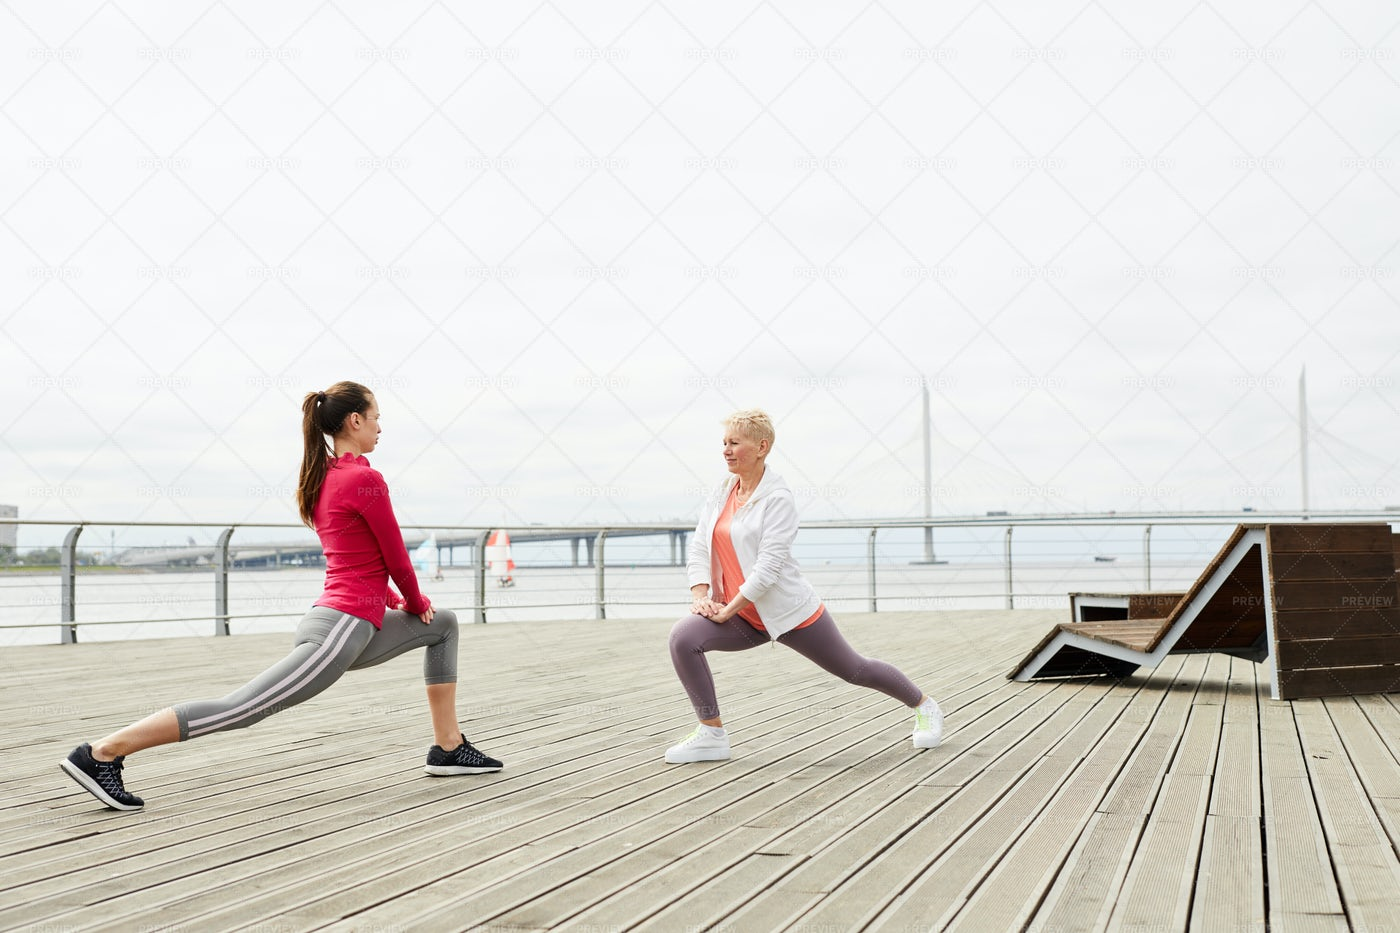 Women Stretching By Water: Stock Photos